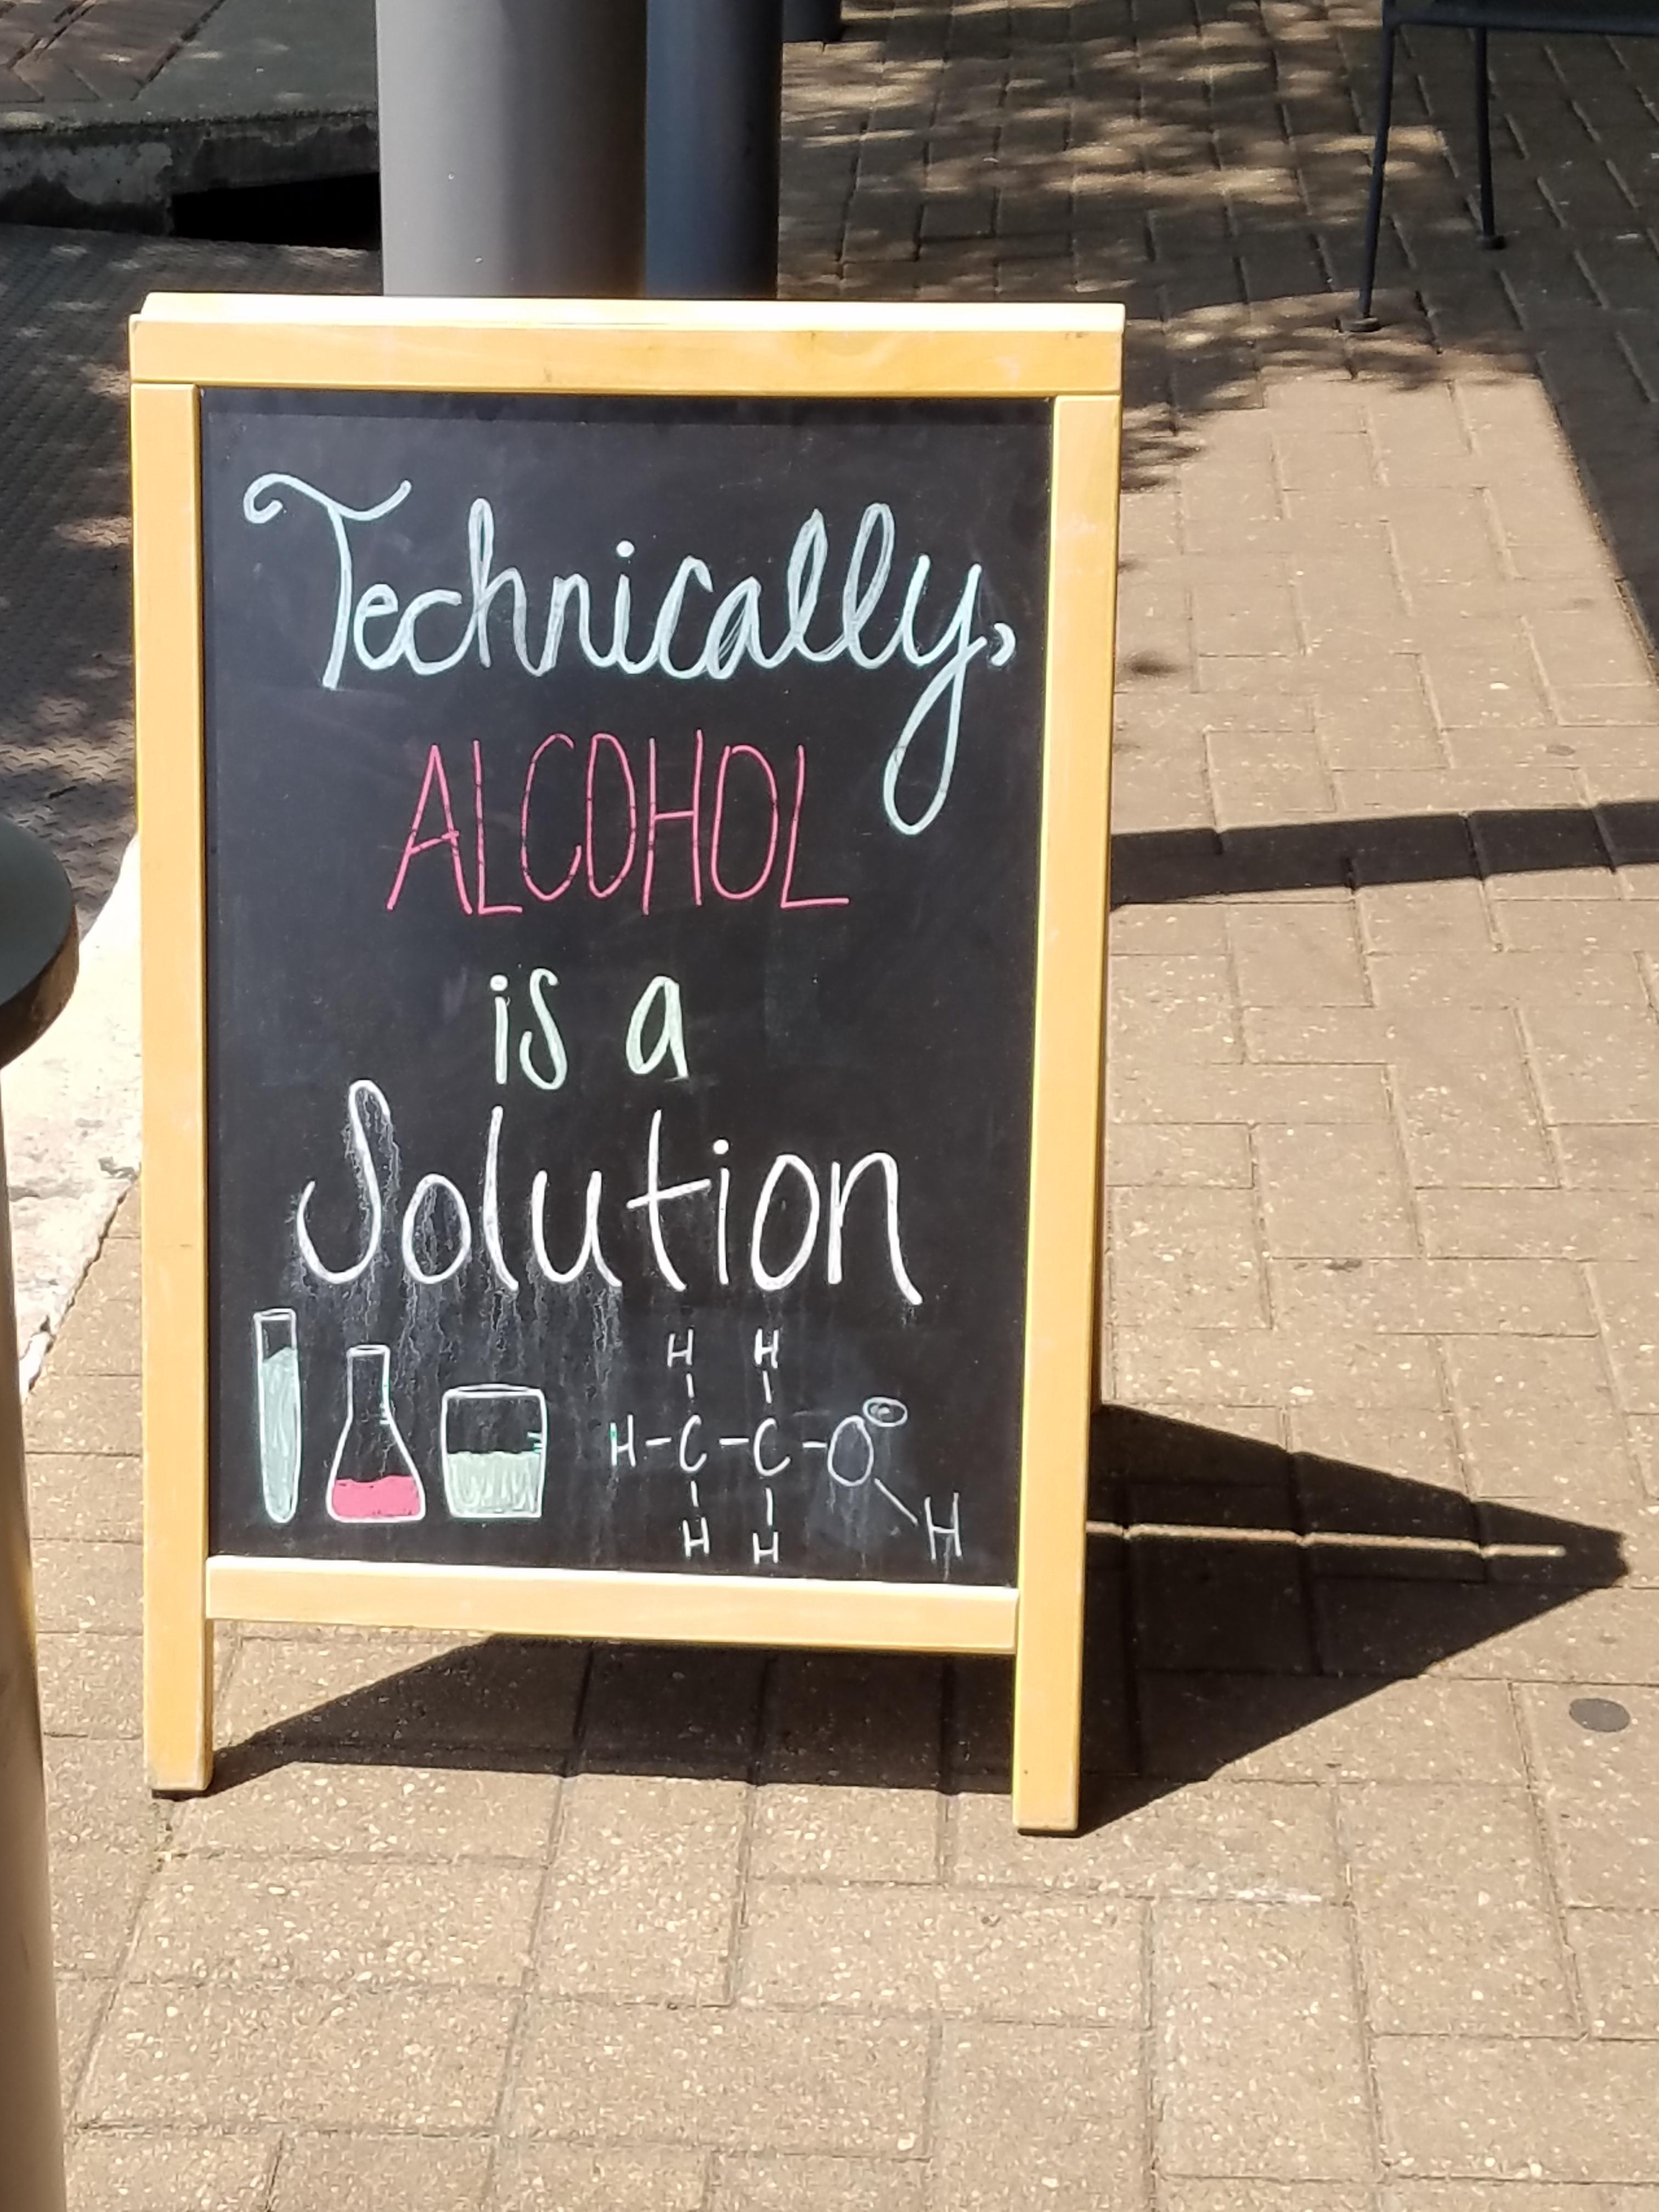 Being technically right is the best kind of right.